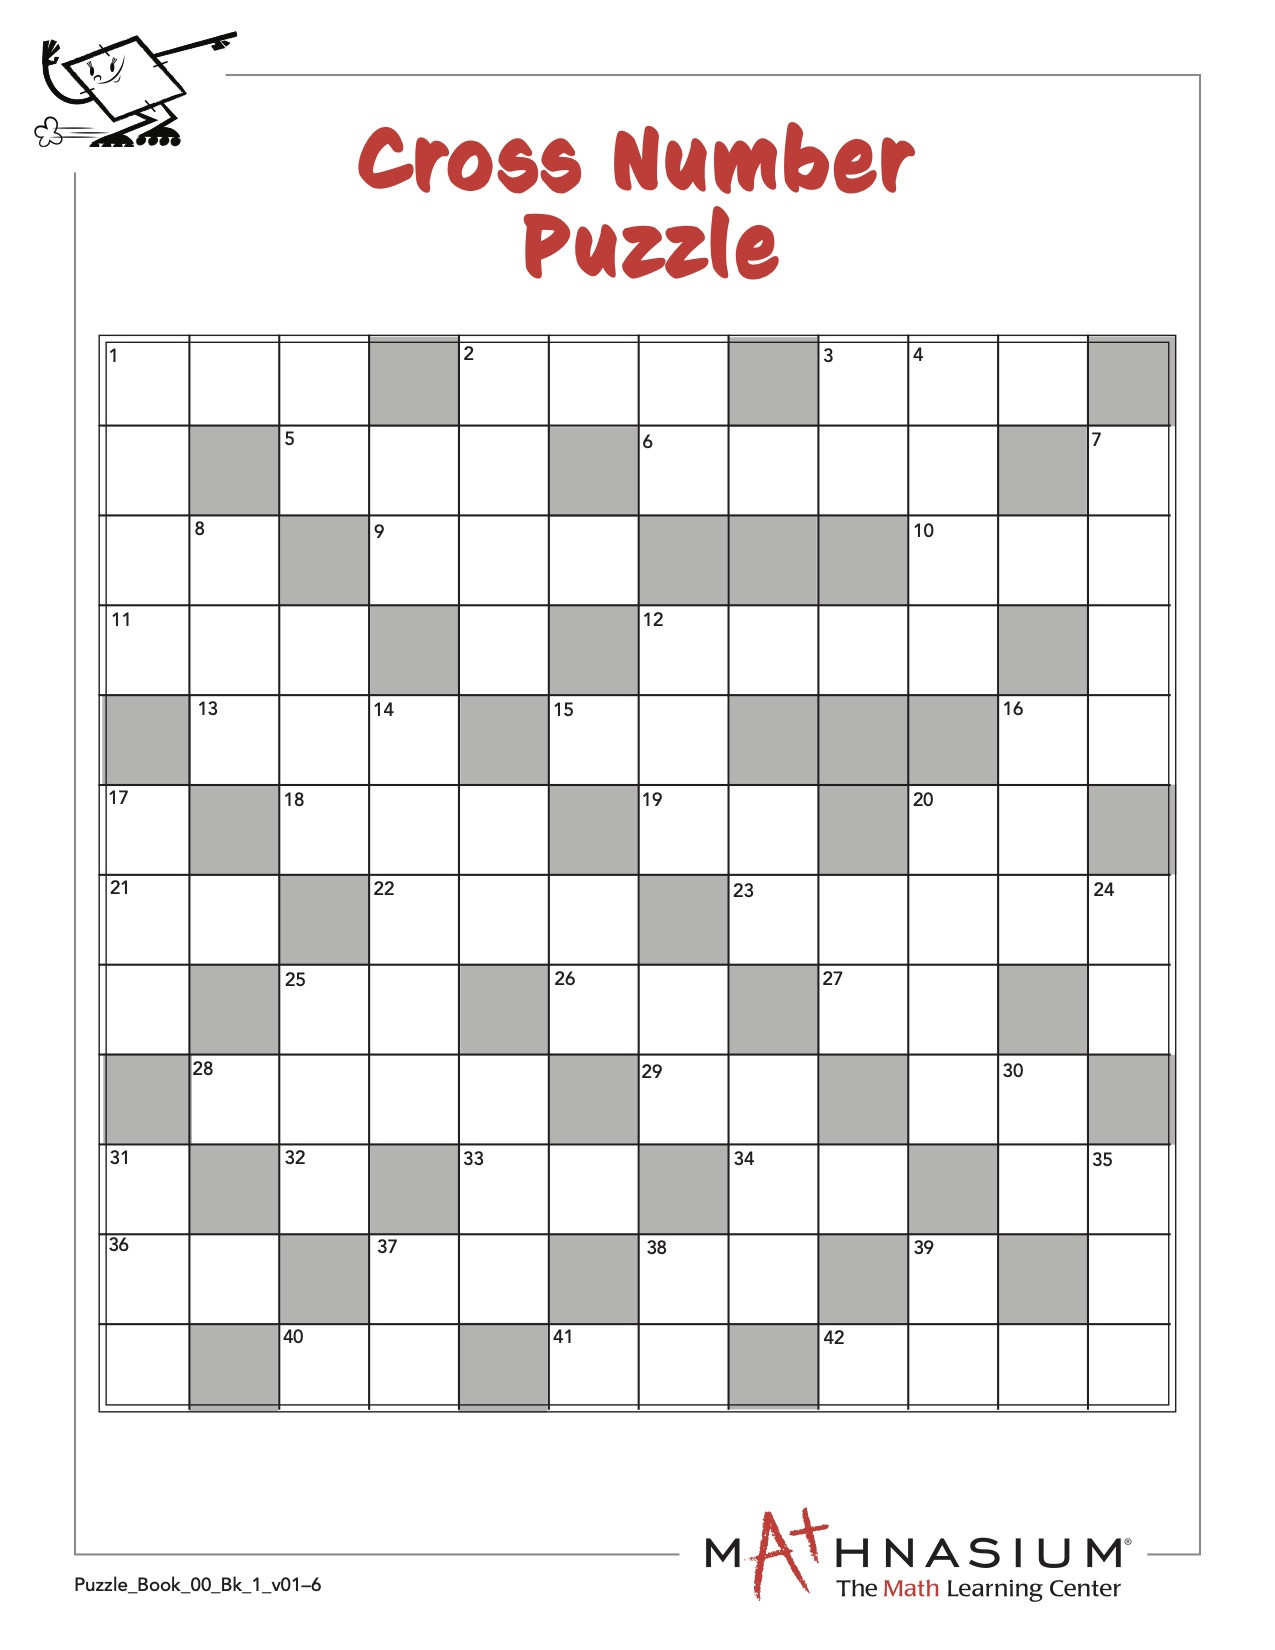 6th Grade Math Crossword Puzzles Happy Friday Here is A Math Crossword Puzzle